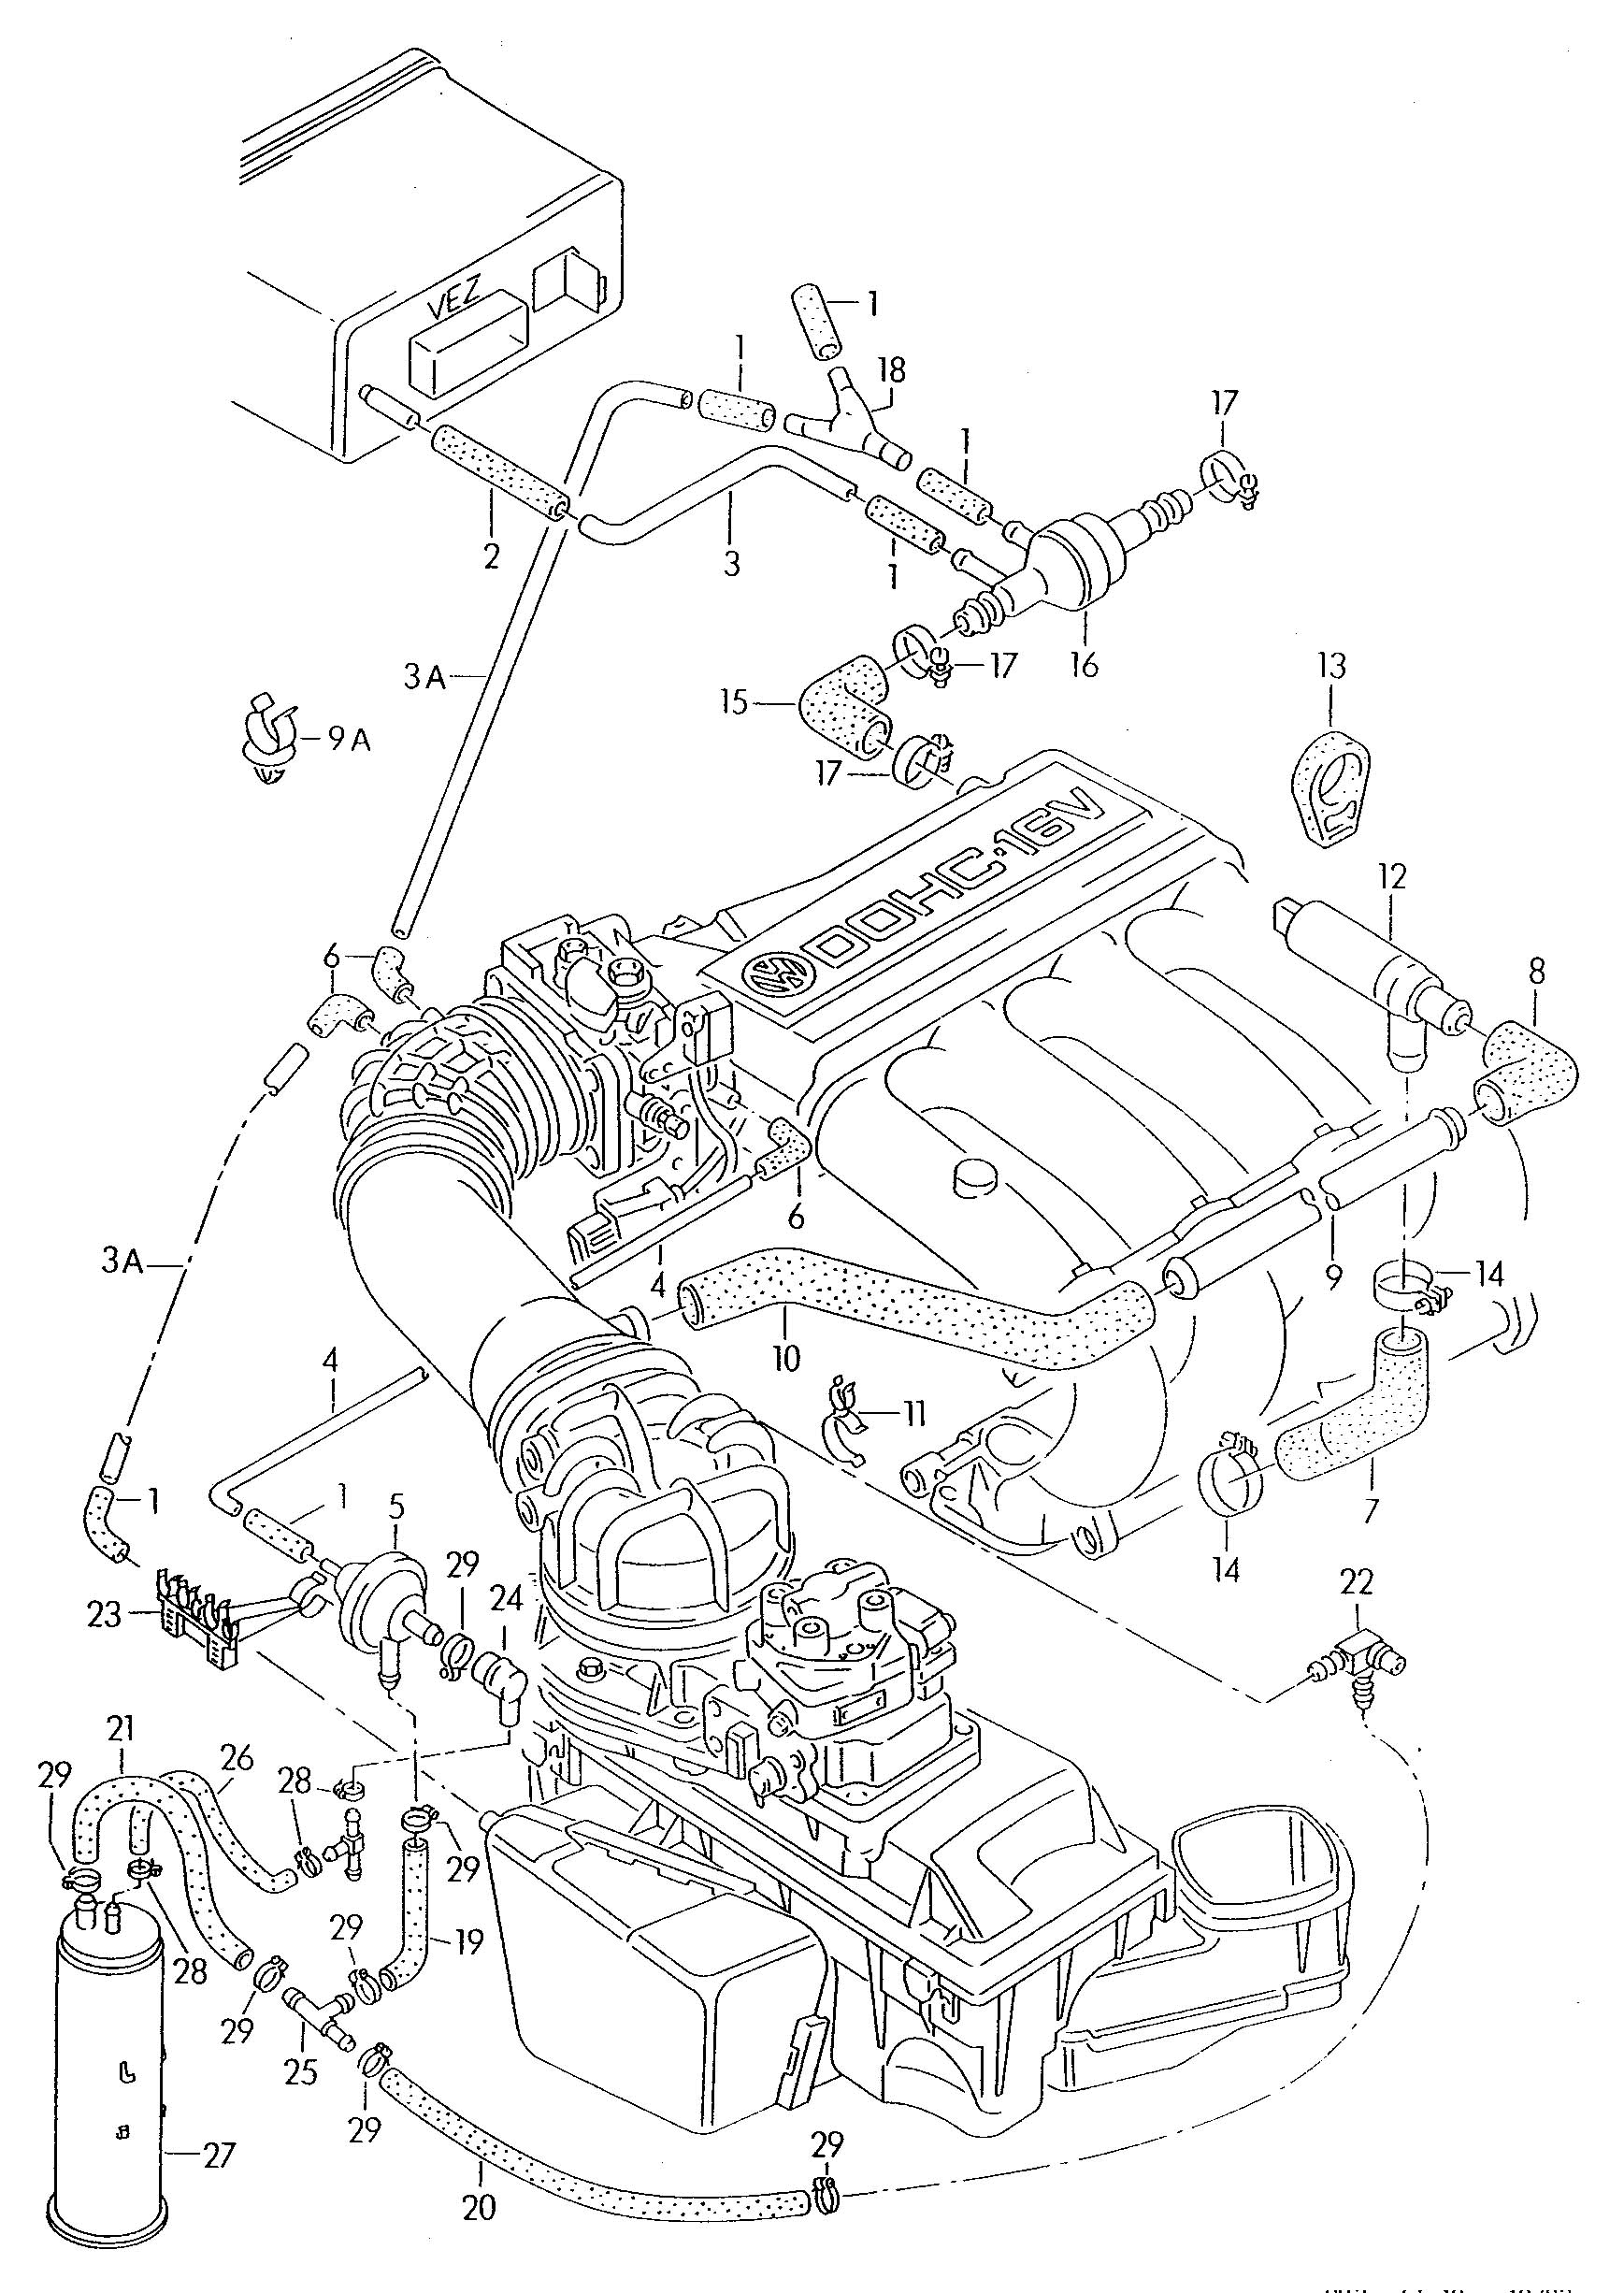 2002 vw passat vacuum hose diagram ez go gas golf cart wiring cabriolet free engine image for